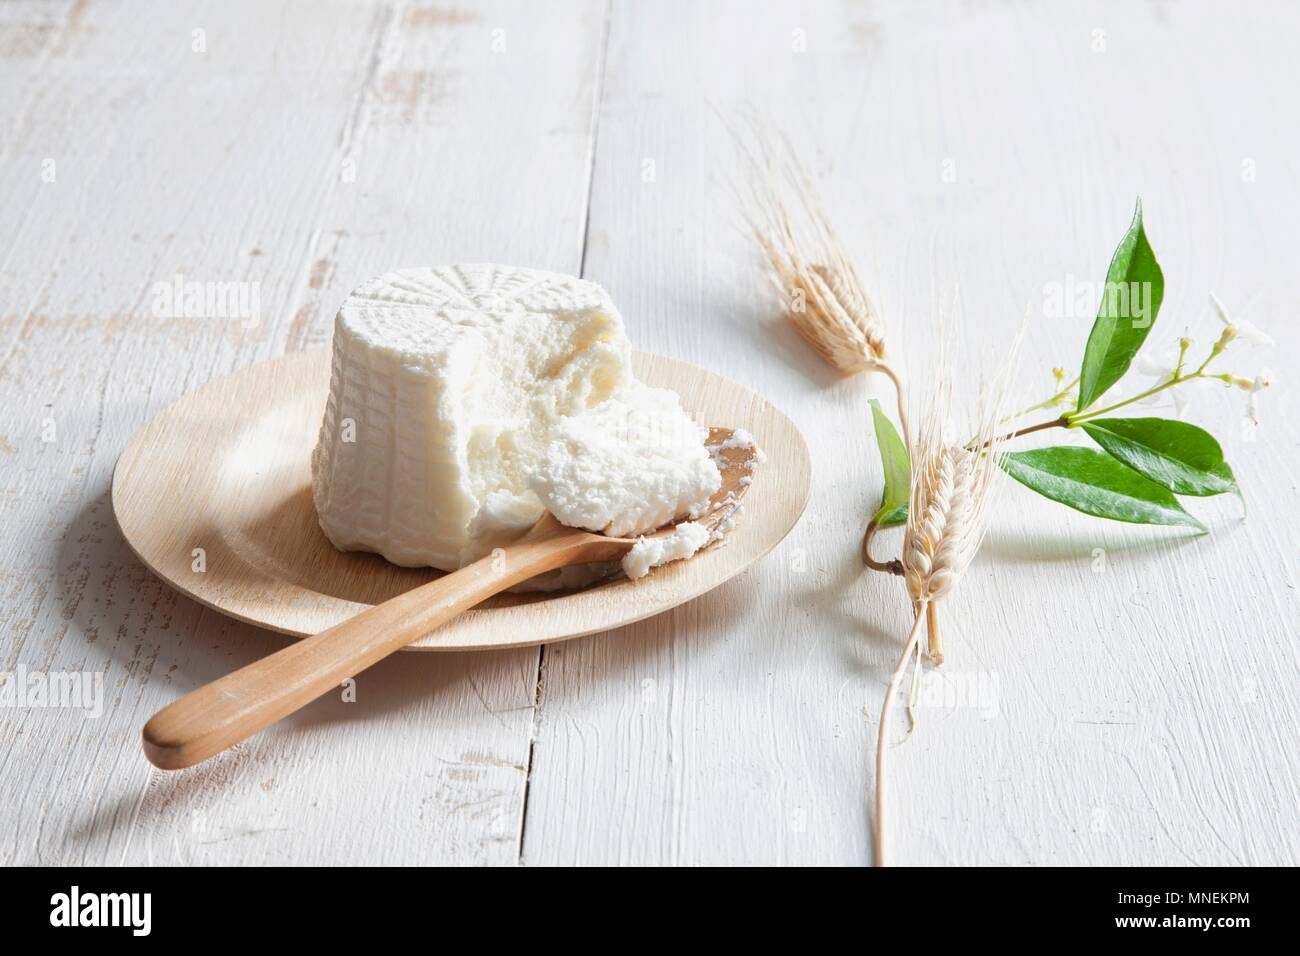 Ricotta on a plate with a wooden spoon - Stock Image